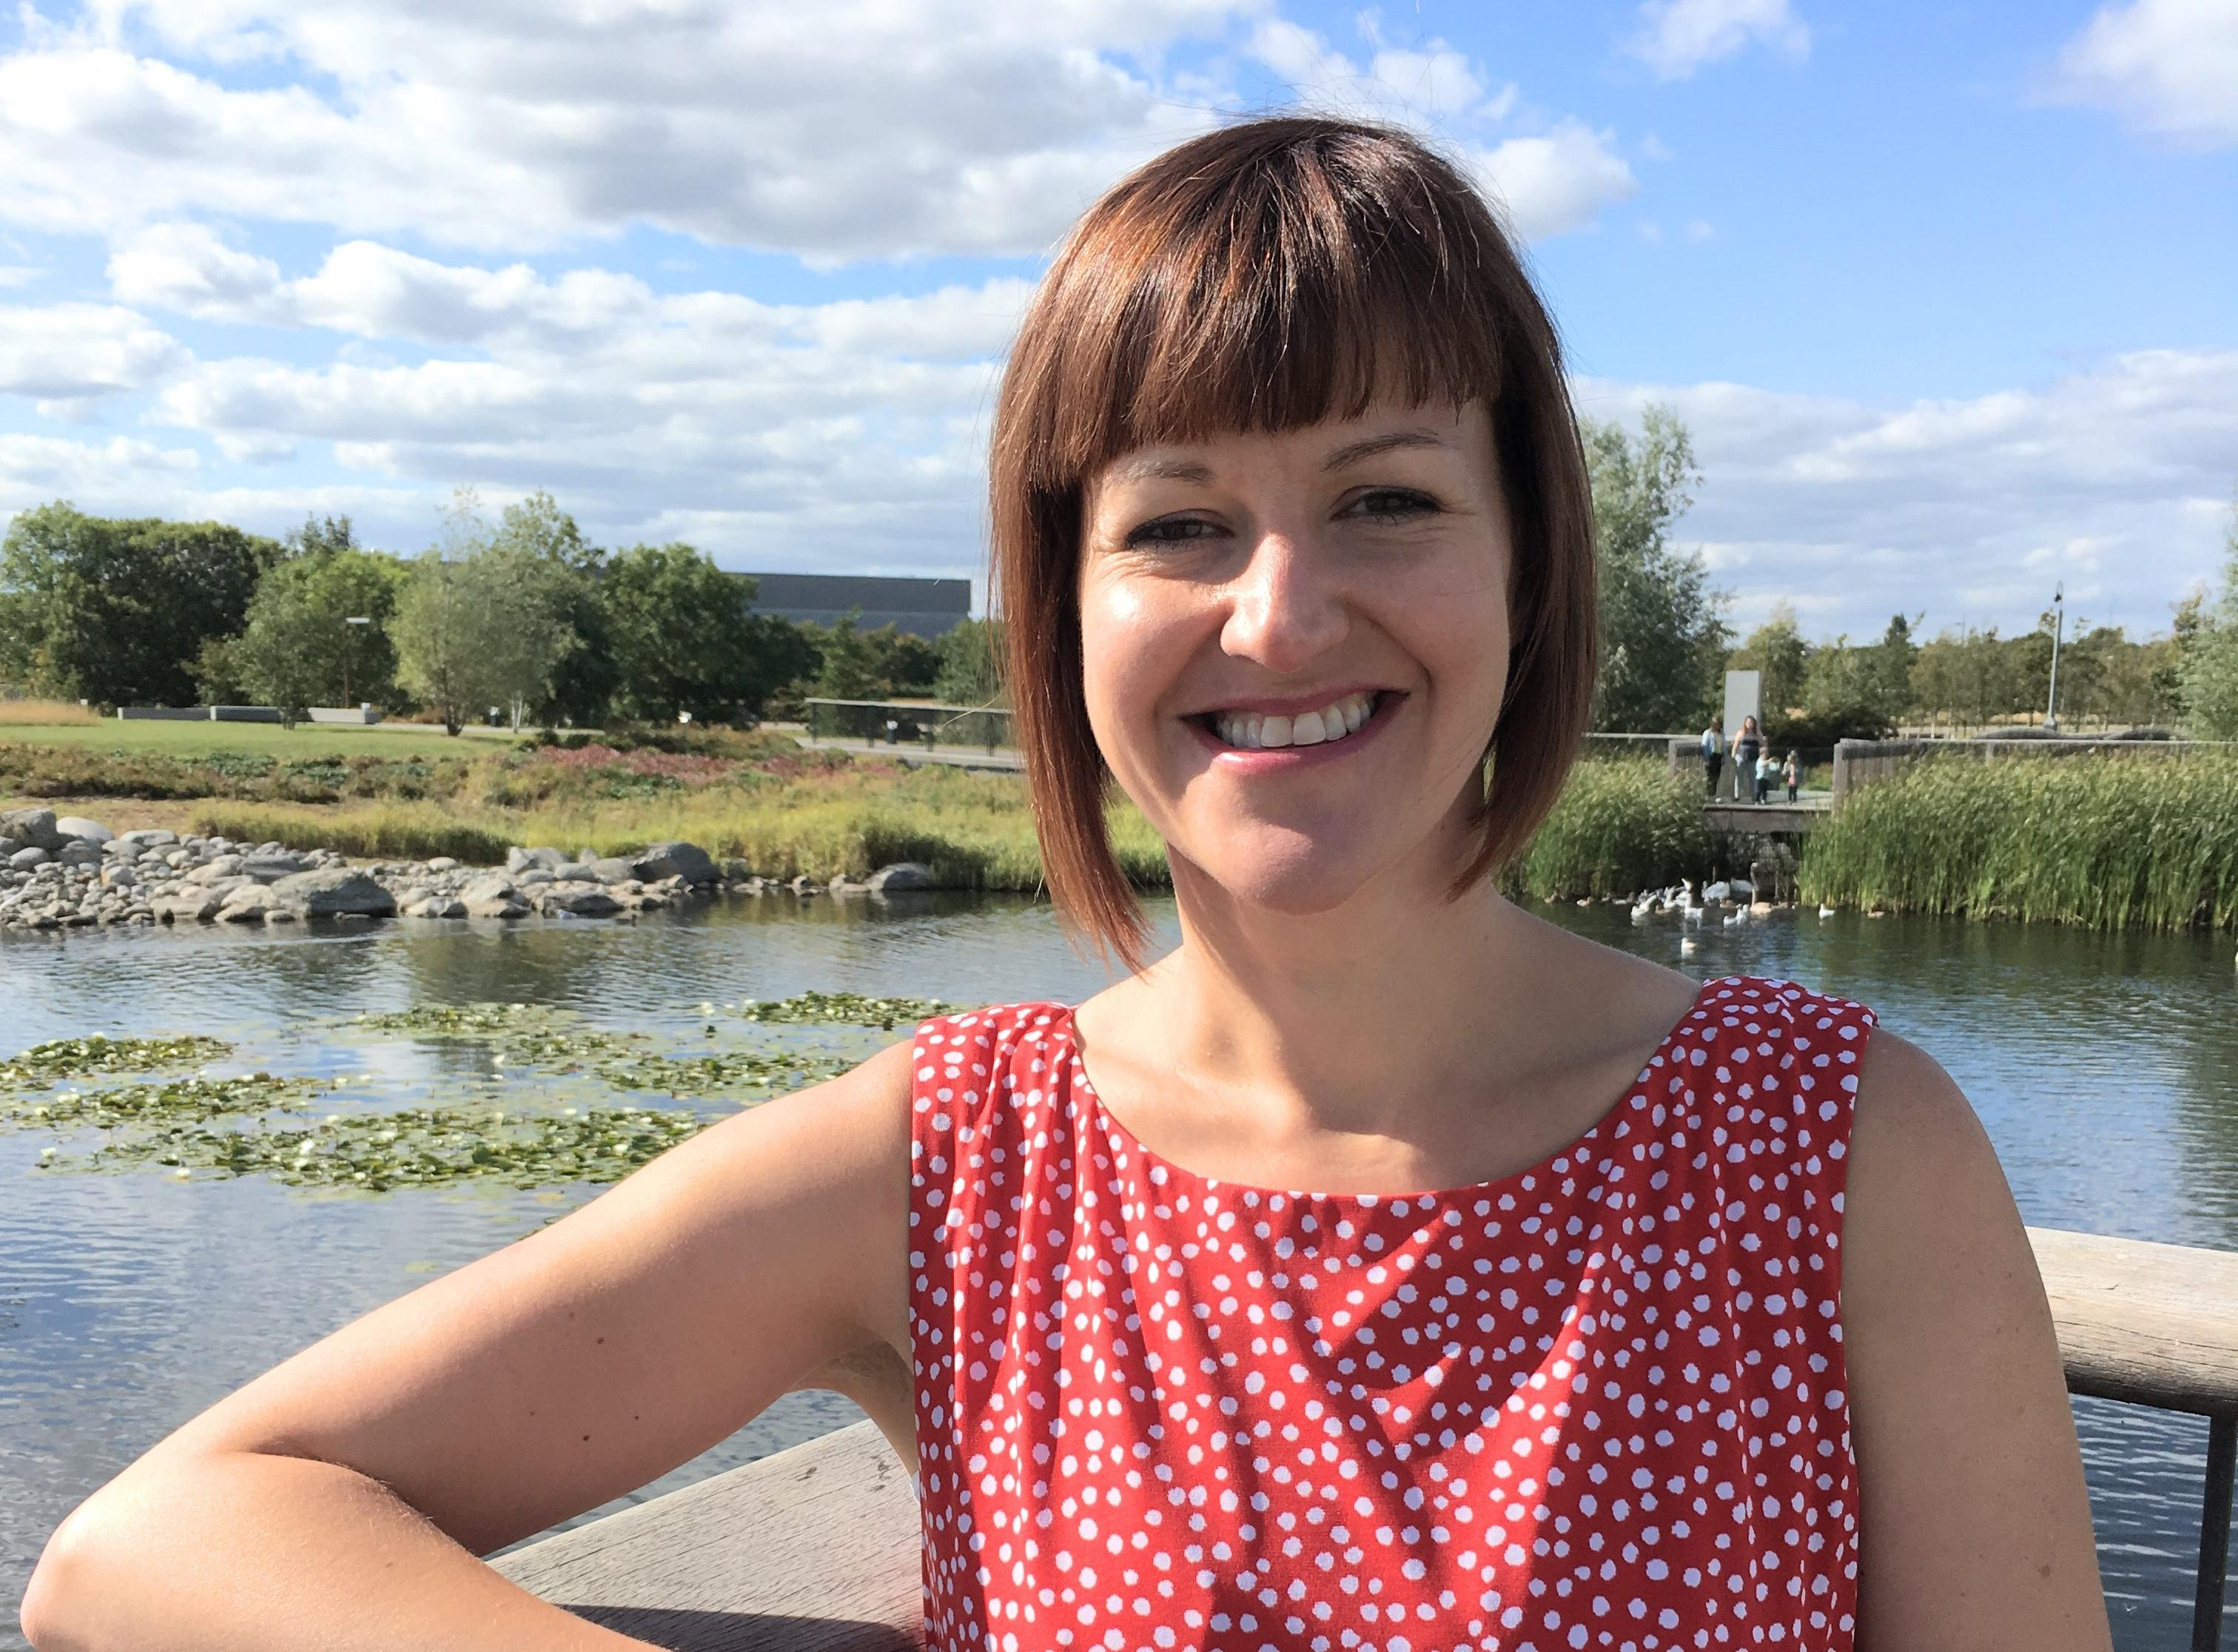 Liz Barron-Majerik is joining the Lantra Scotland team as director